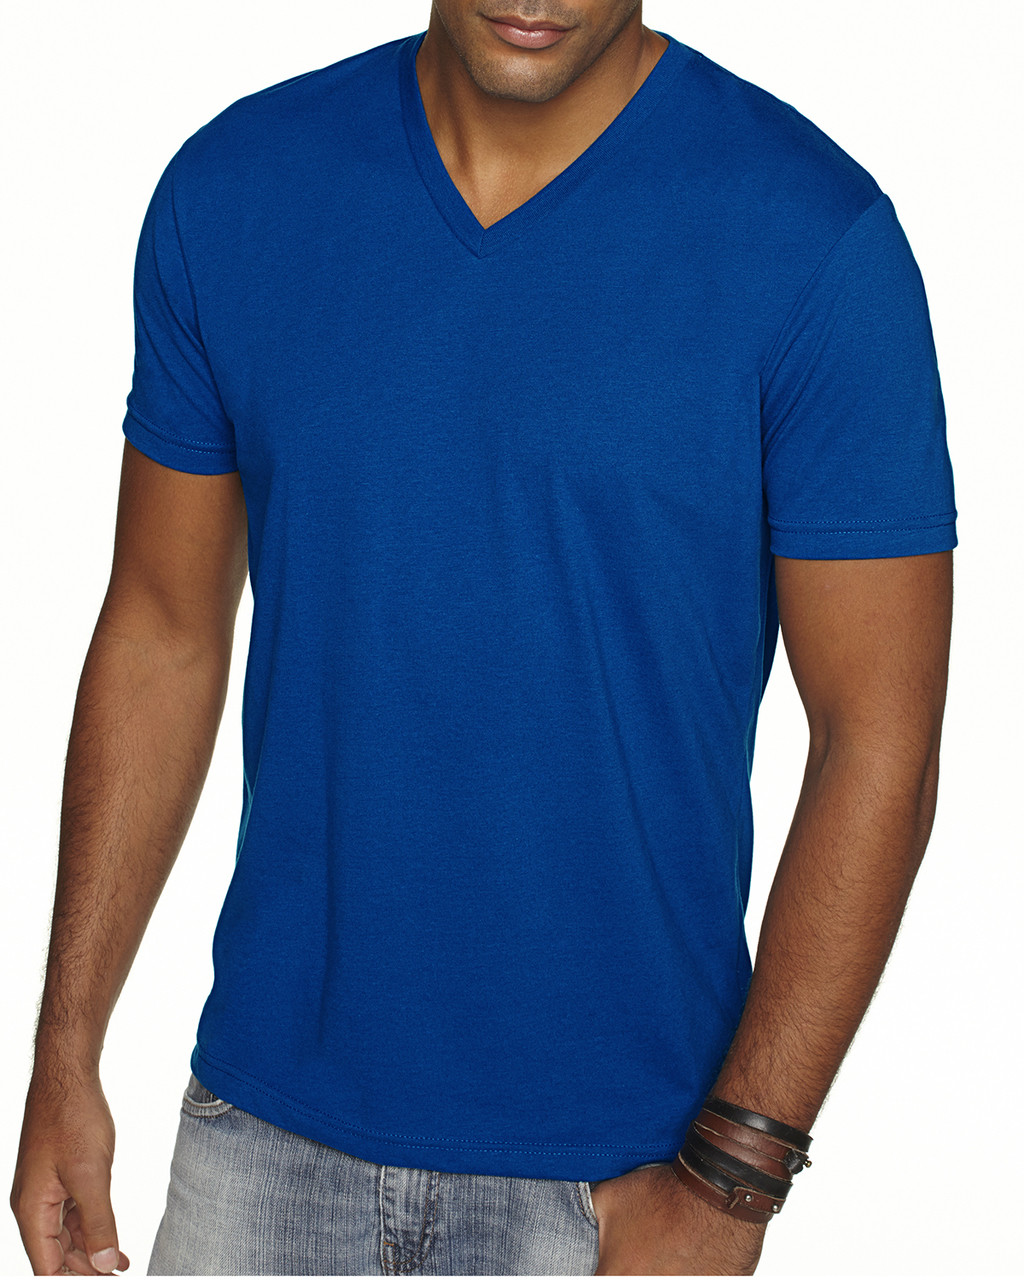 Royal - 6440 Next Level Men's Premium Fitted Sueded V-Neck Tee | Blankclothing.ca